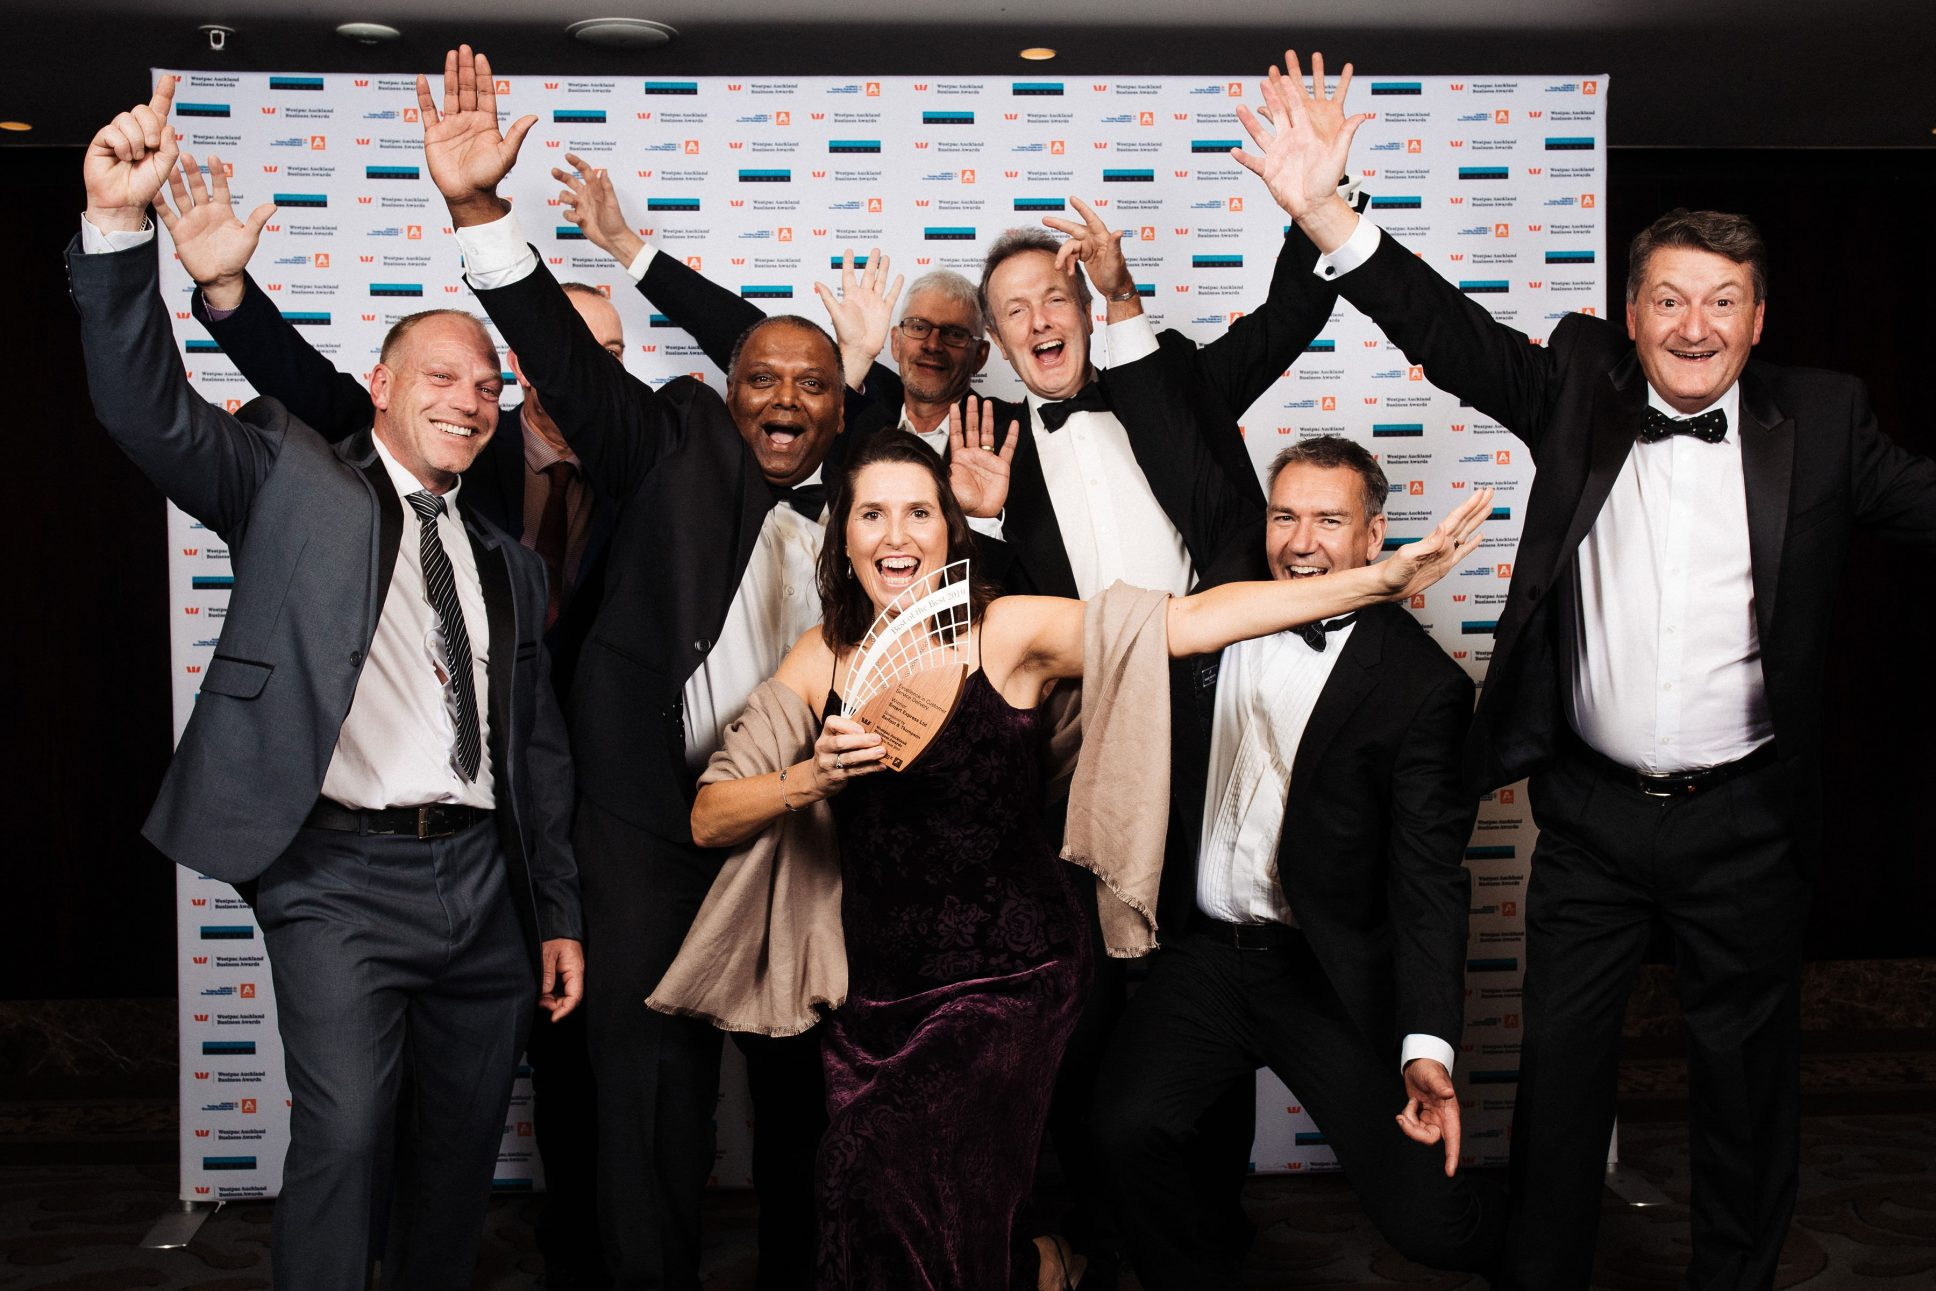 Winners at the Westpac Auckland Business awards held at the Cordis Hotel